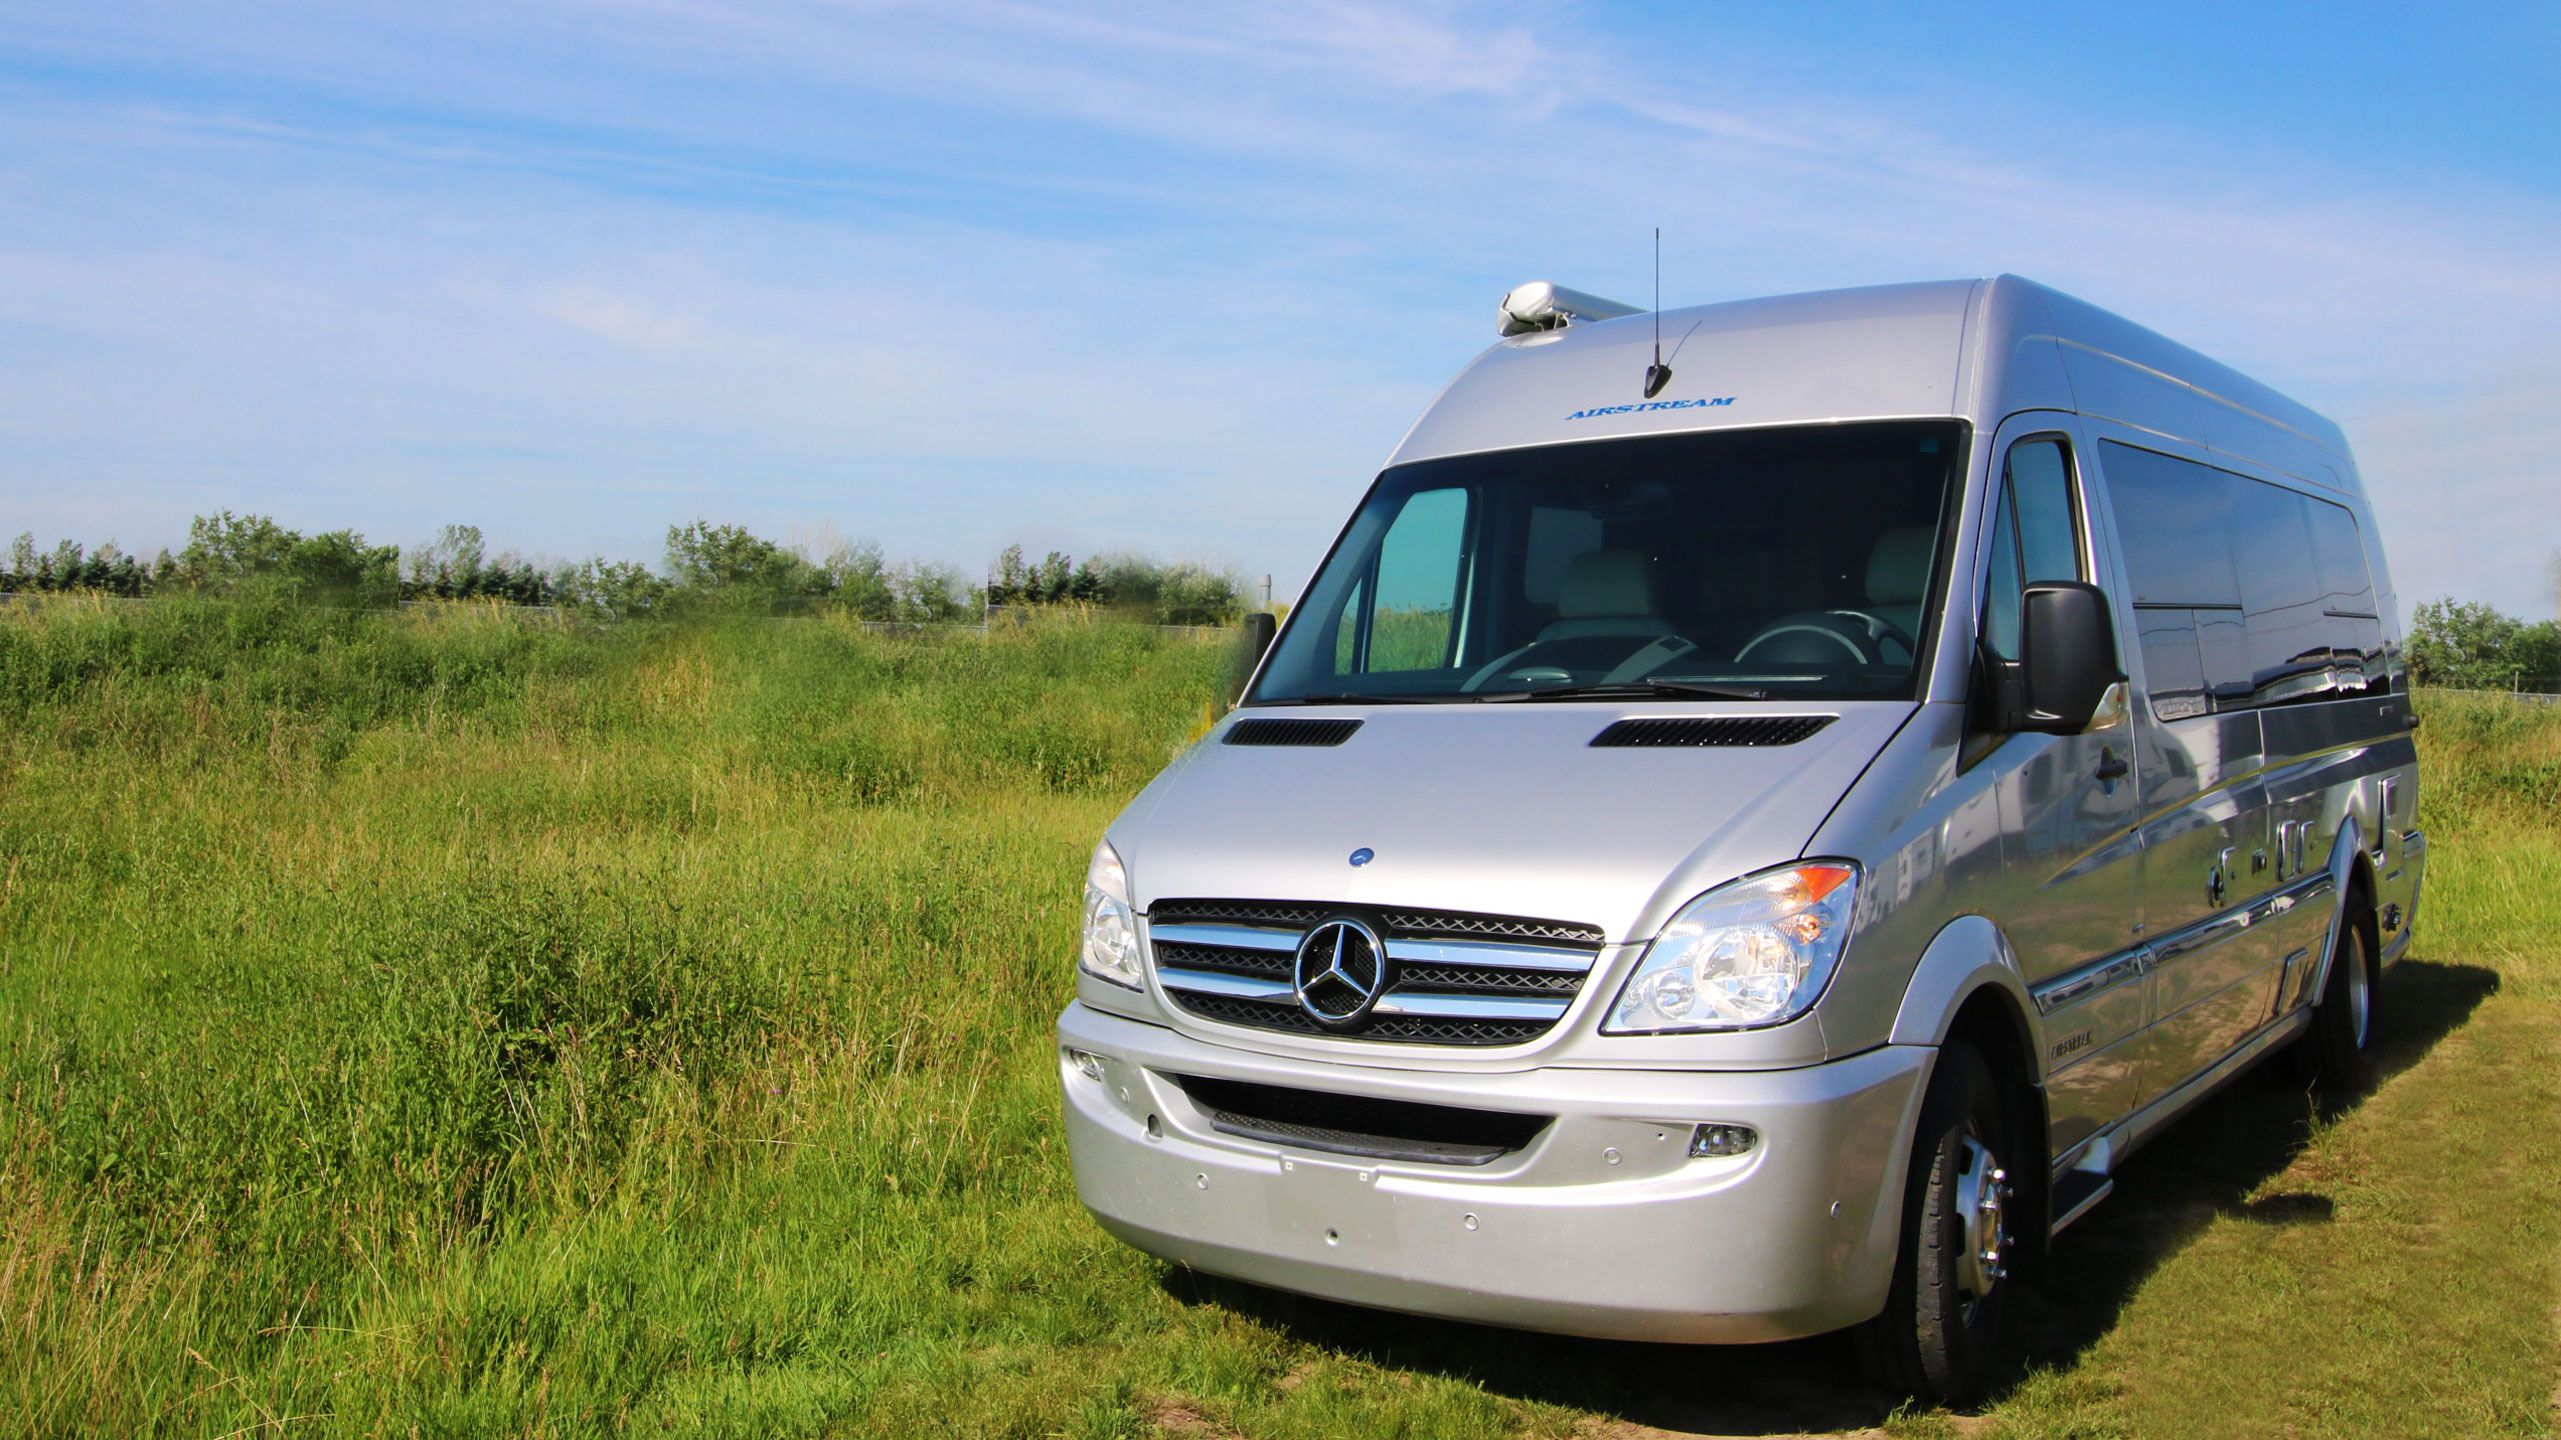 2014 AIRSTREAM INTERSTATE 3500 Sprinter